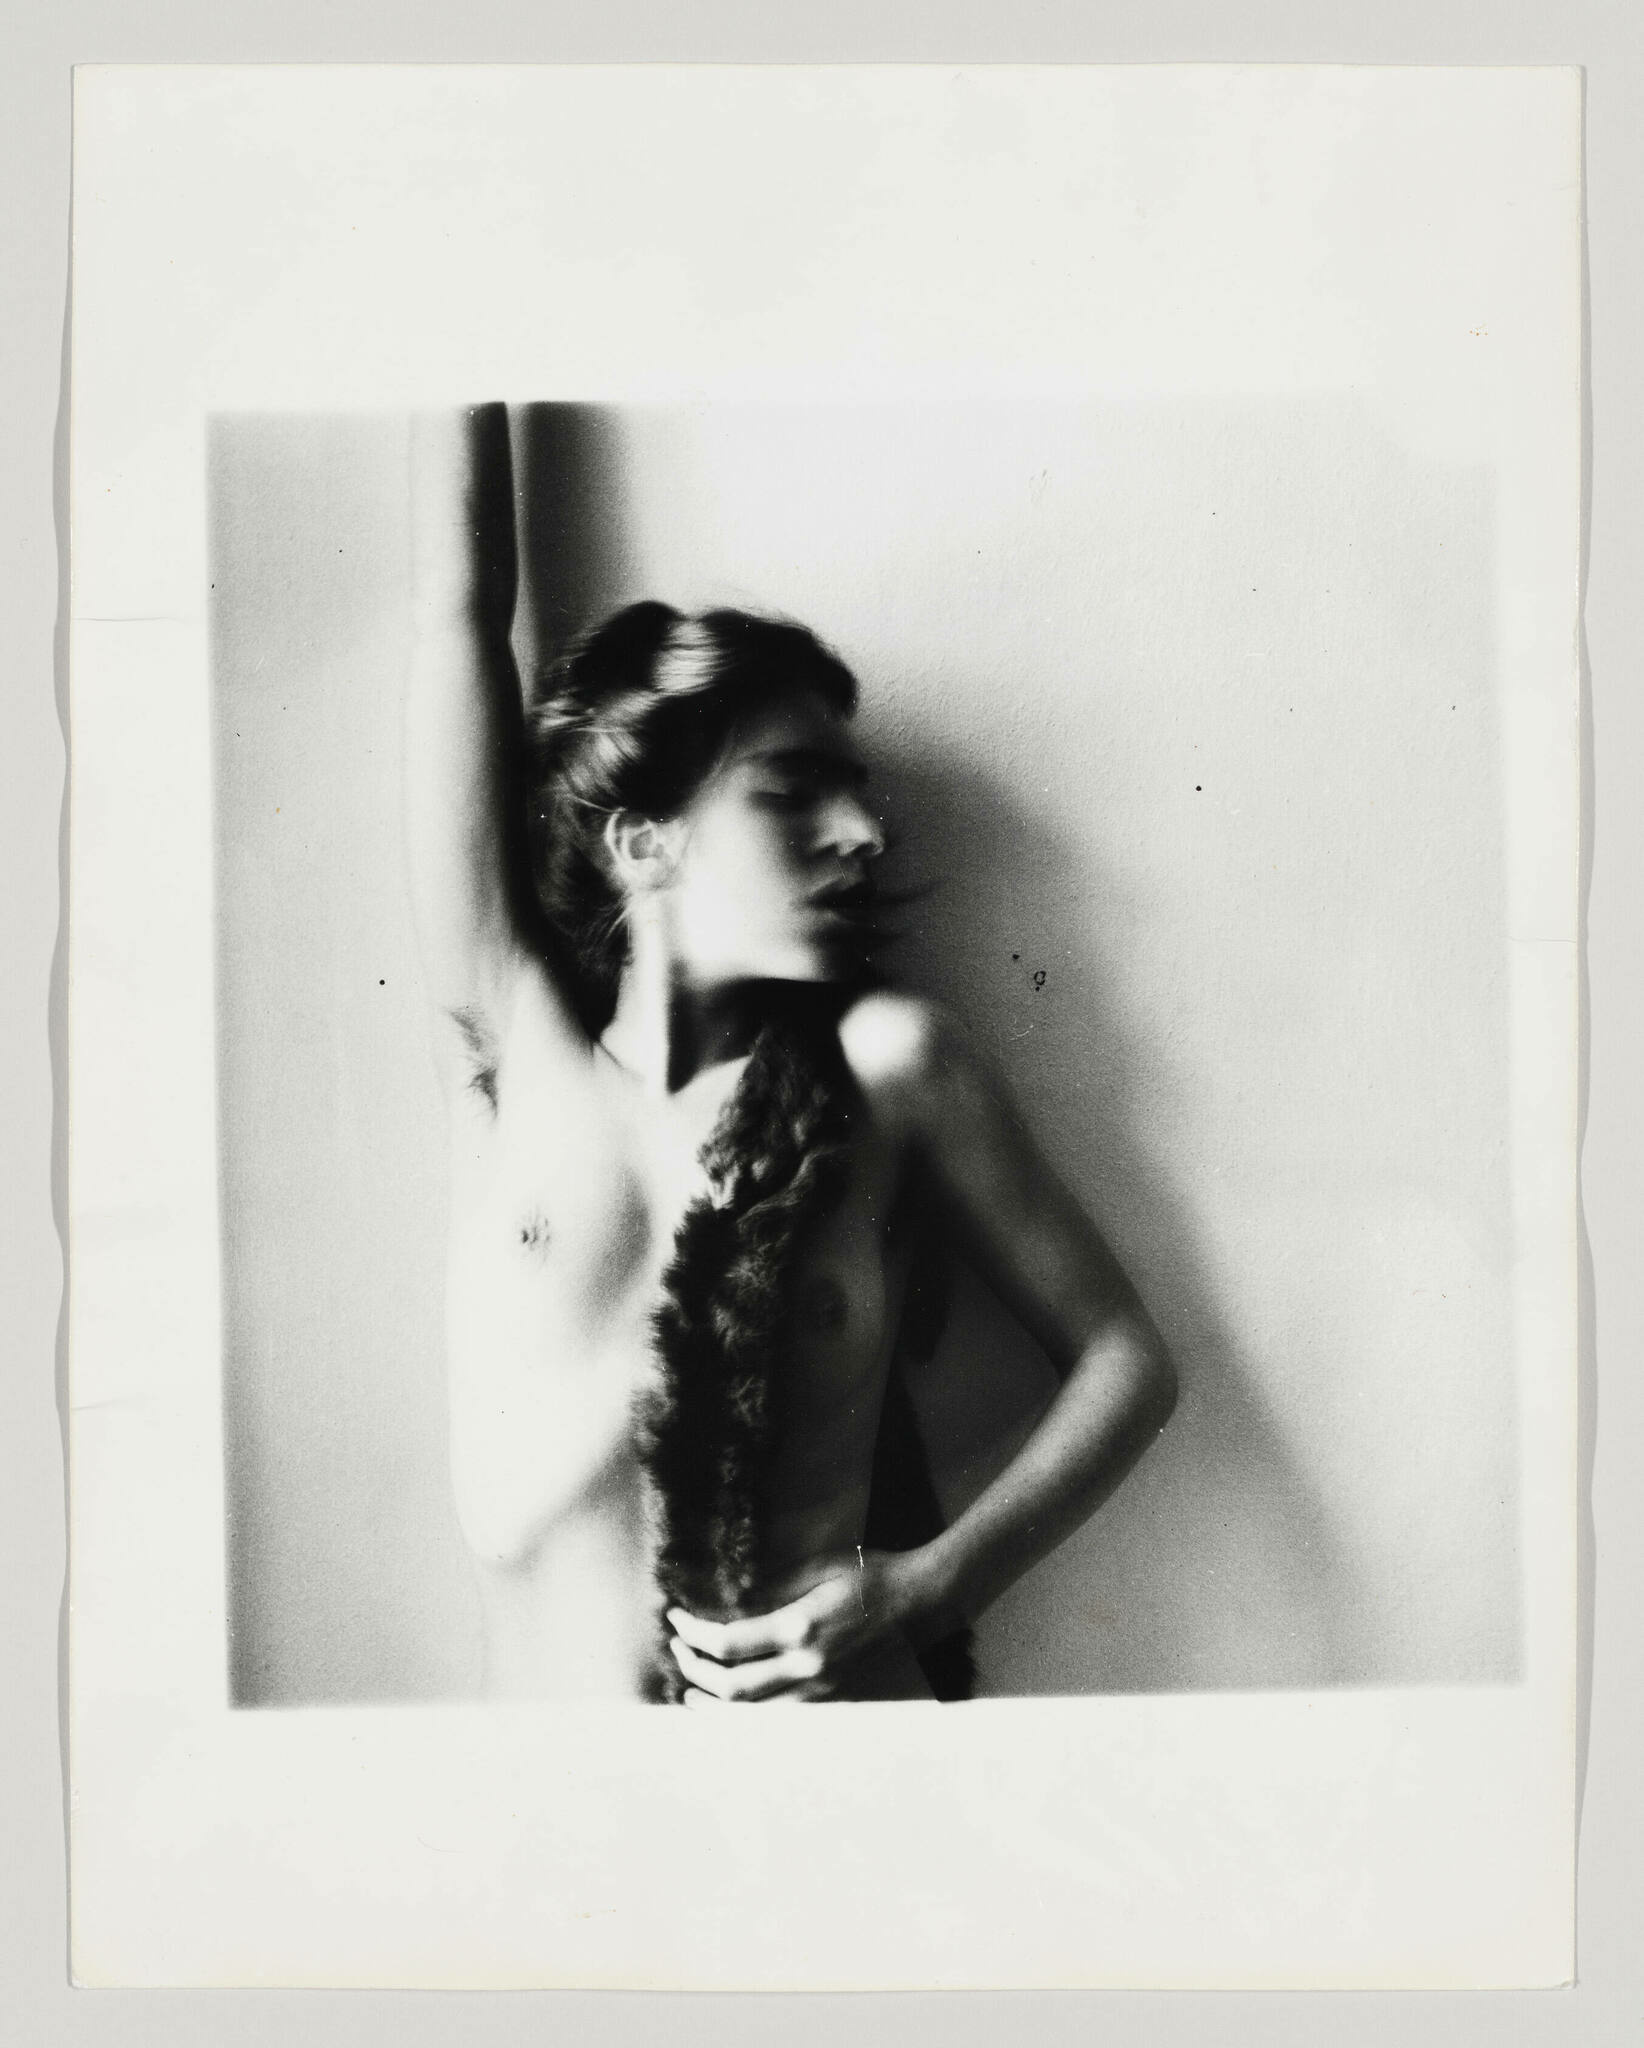 A nude woman looks to the right as her bent right arm touches her braid